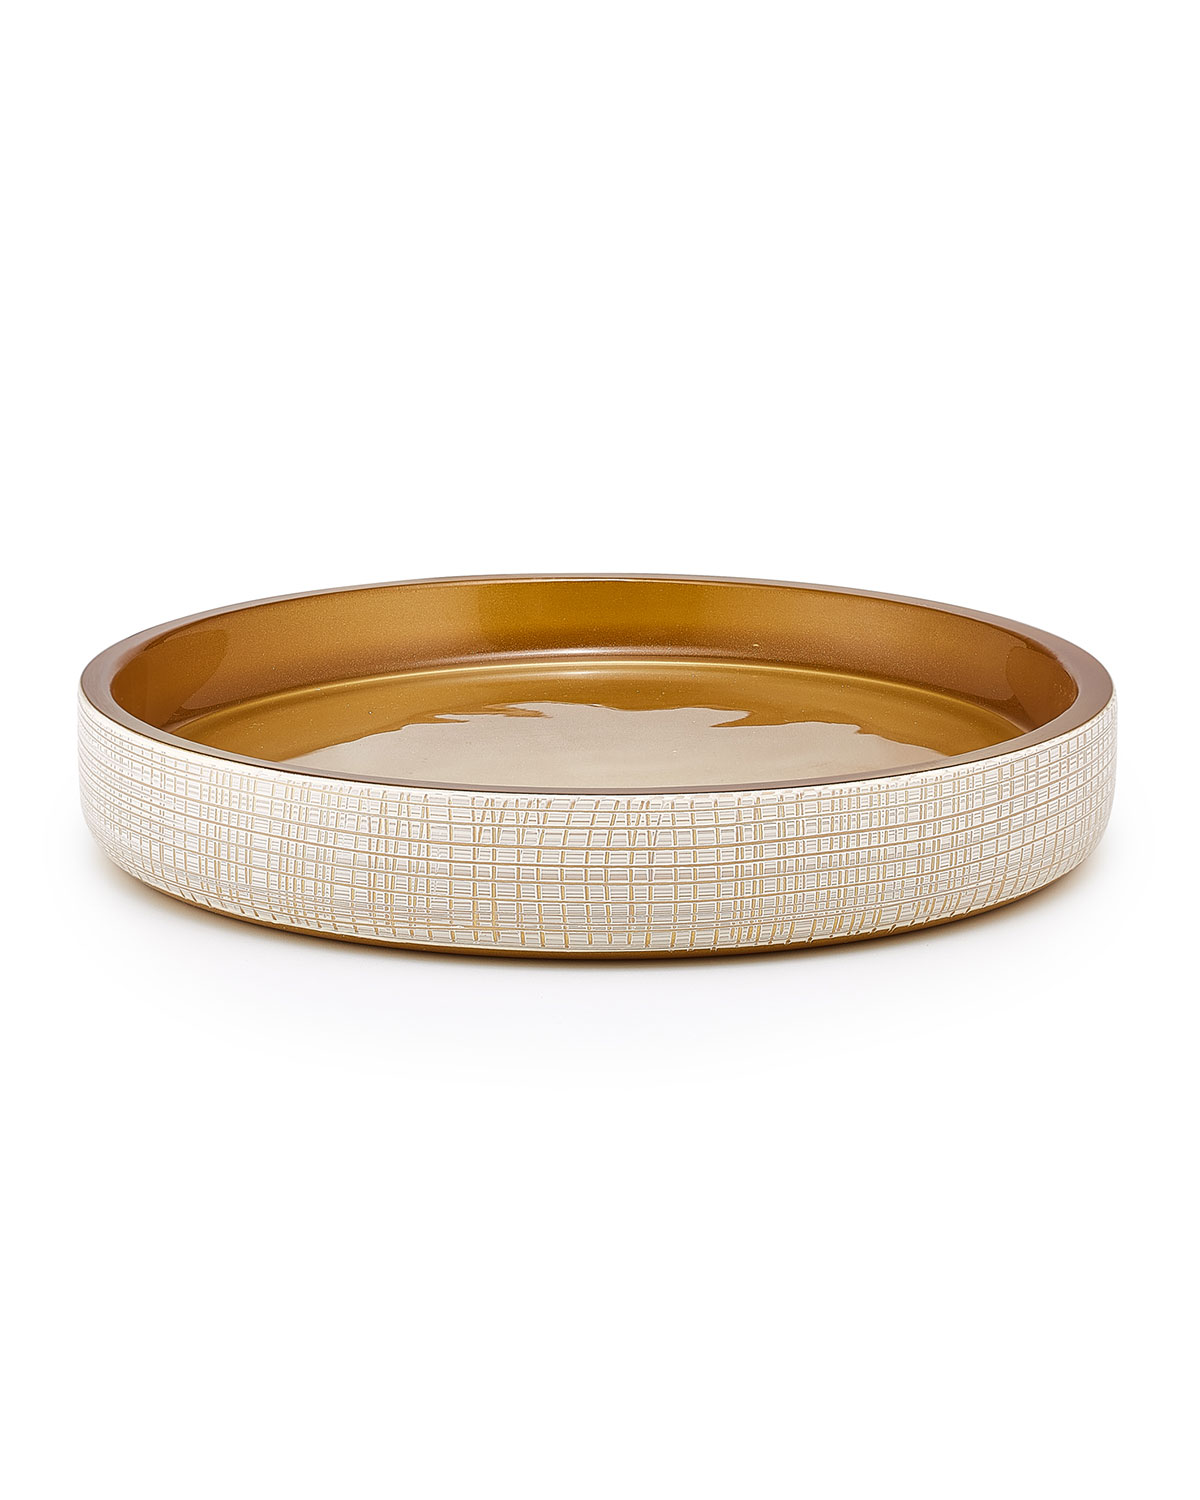 Labrazel Cookware & bakewares WOVEN GOLD TRAY